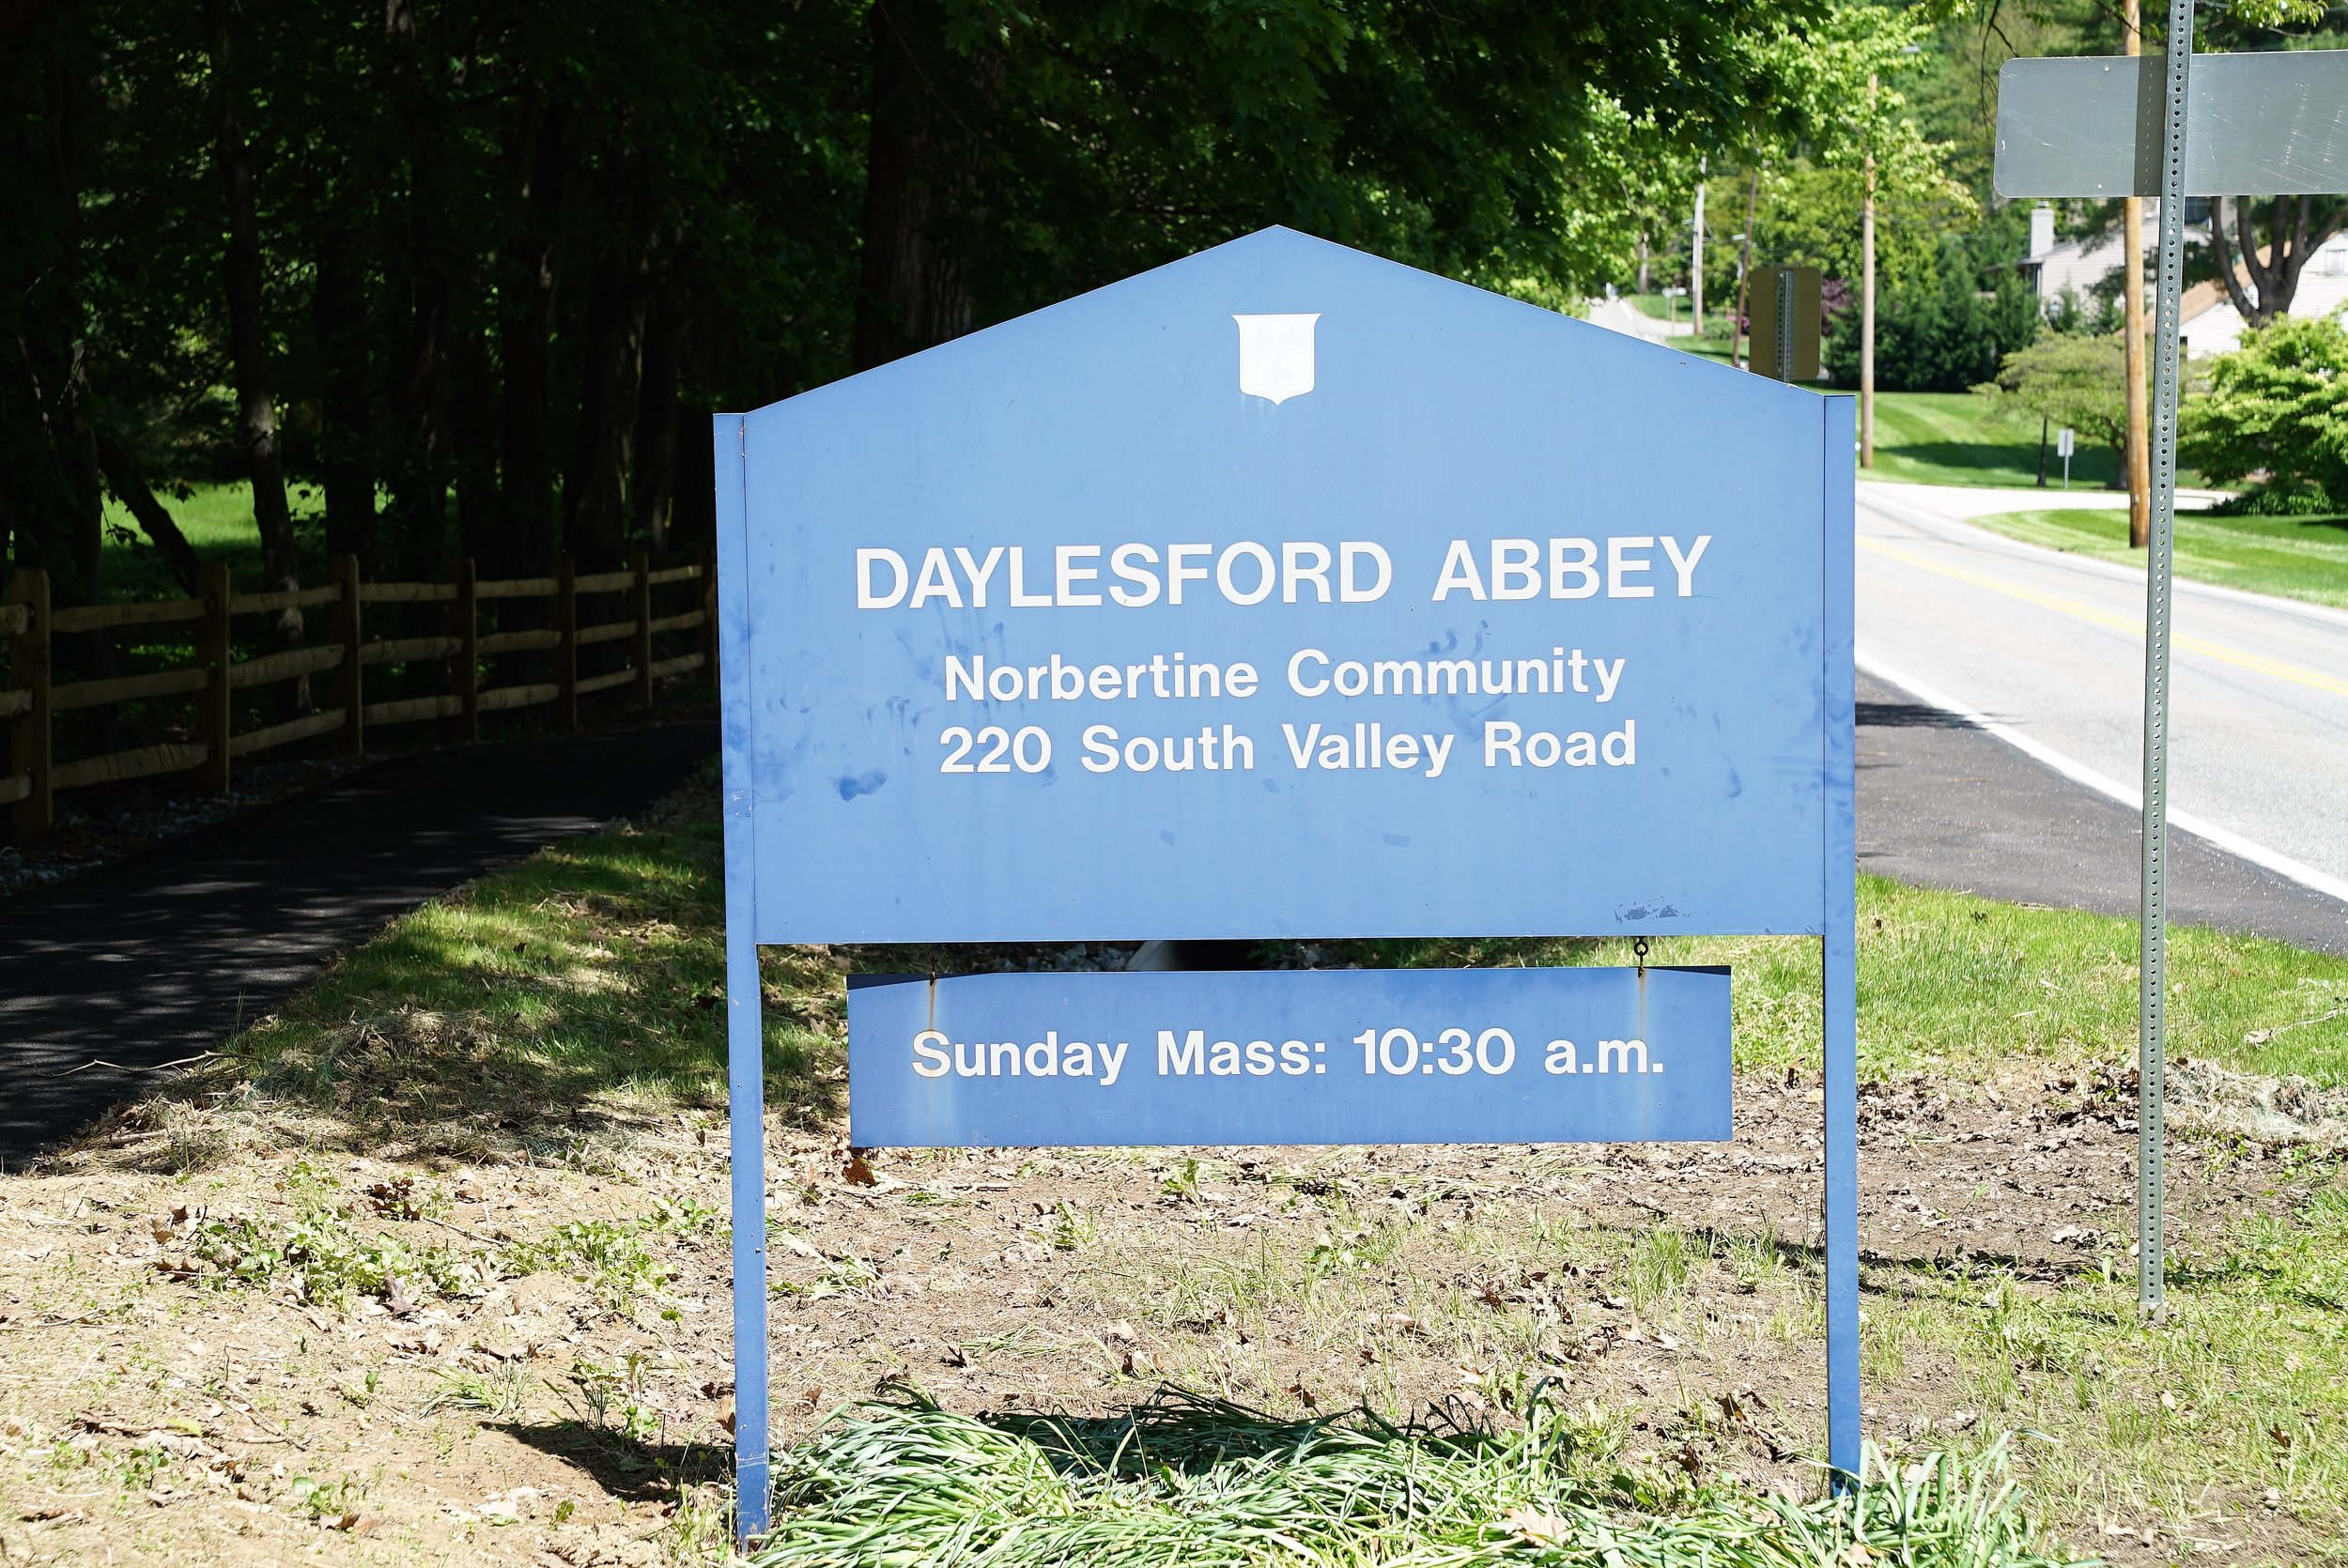 Roadside sign: Daylesford Abbey. Paoli, Pennsylvania.